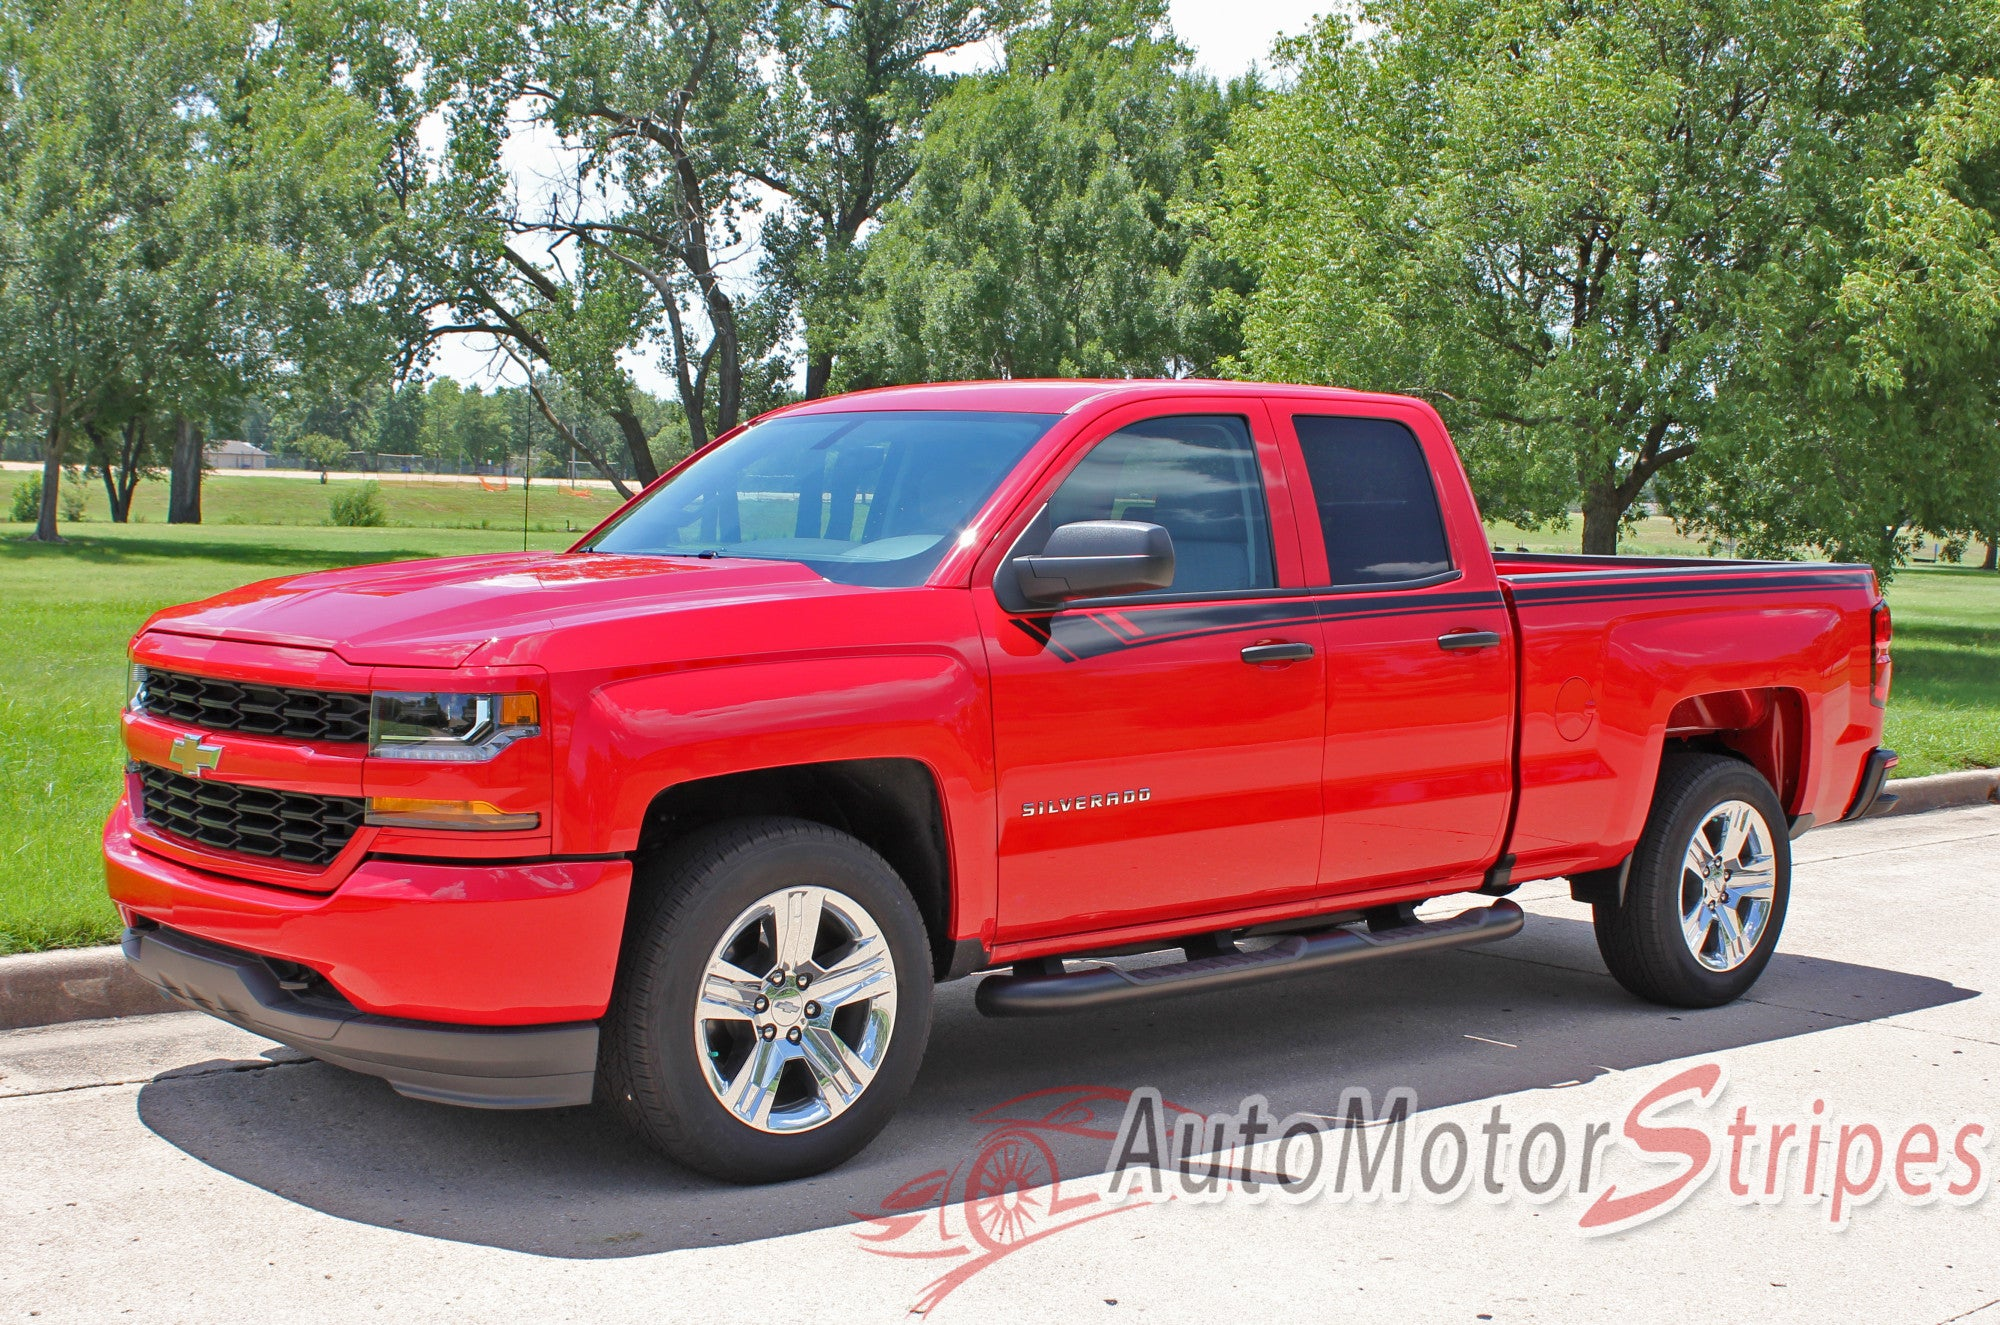 2014 2018 chevy silverado stripes breaker truck side door pin striping auto motor stripes. Black Bedroom Furniture Sets. Home Design Ideas